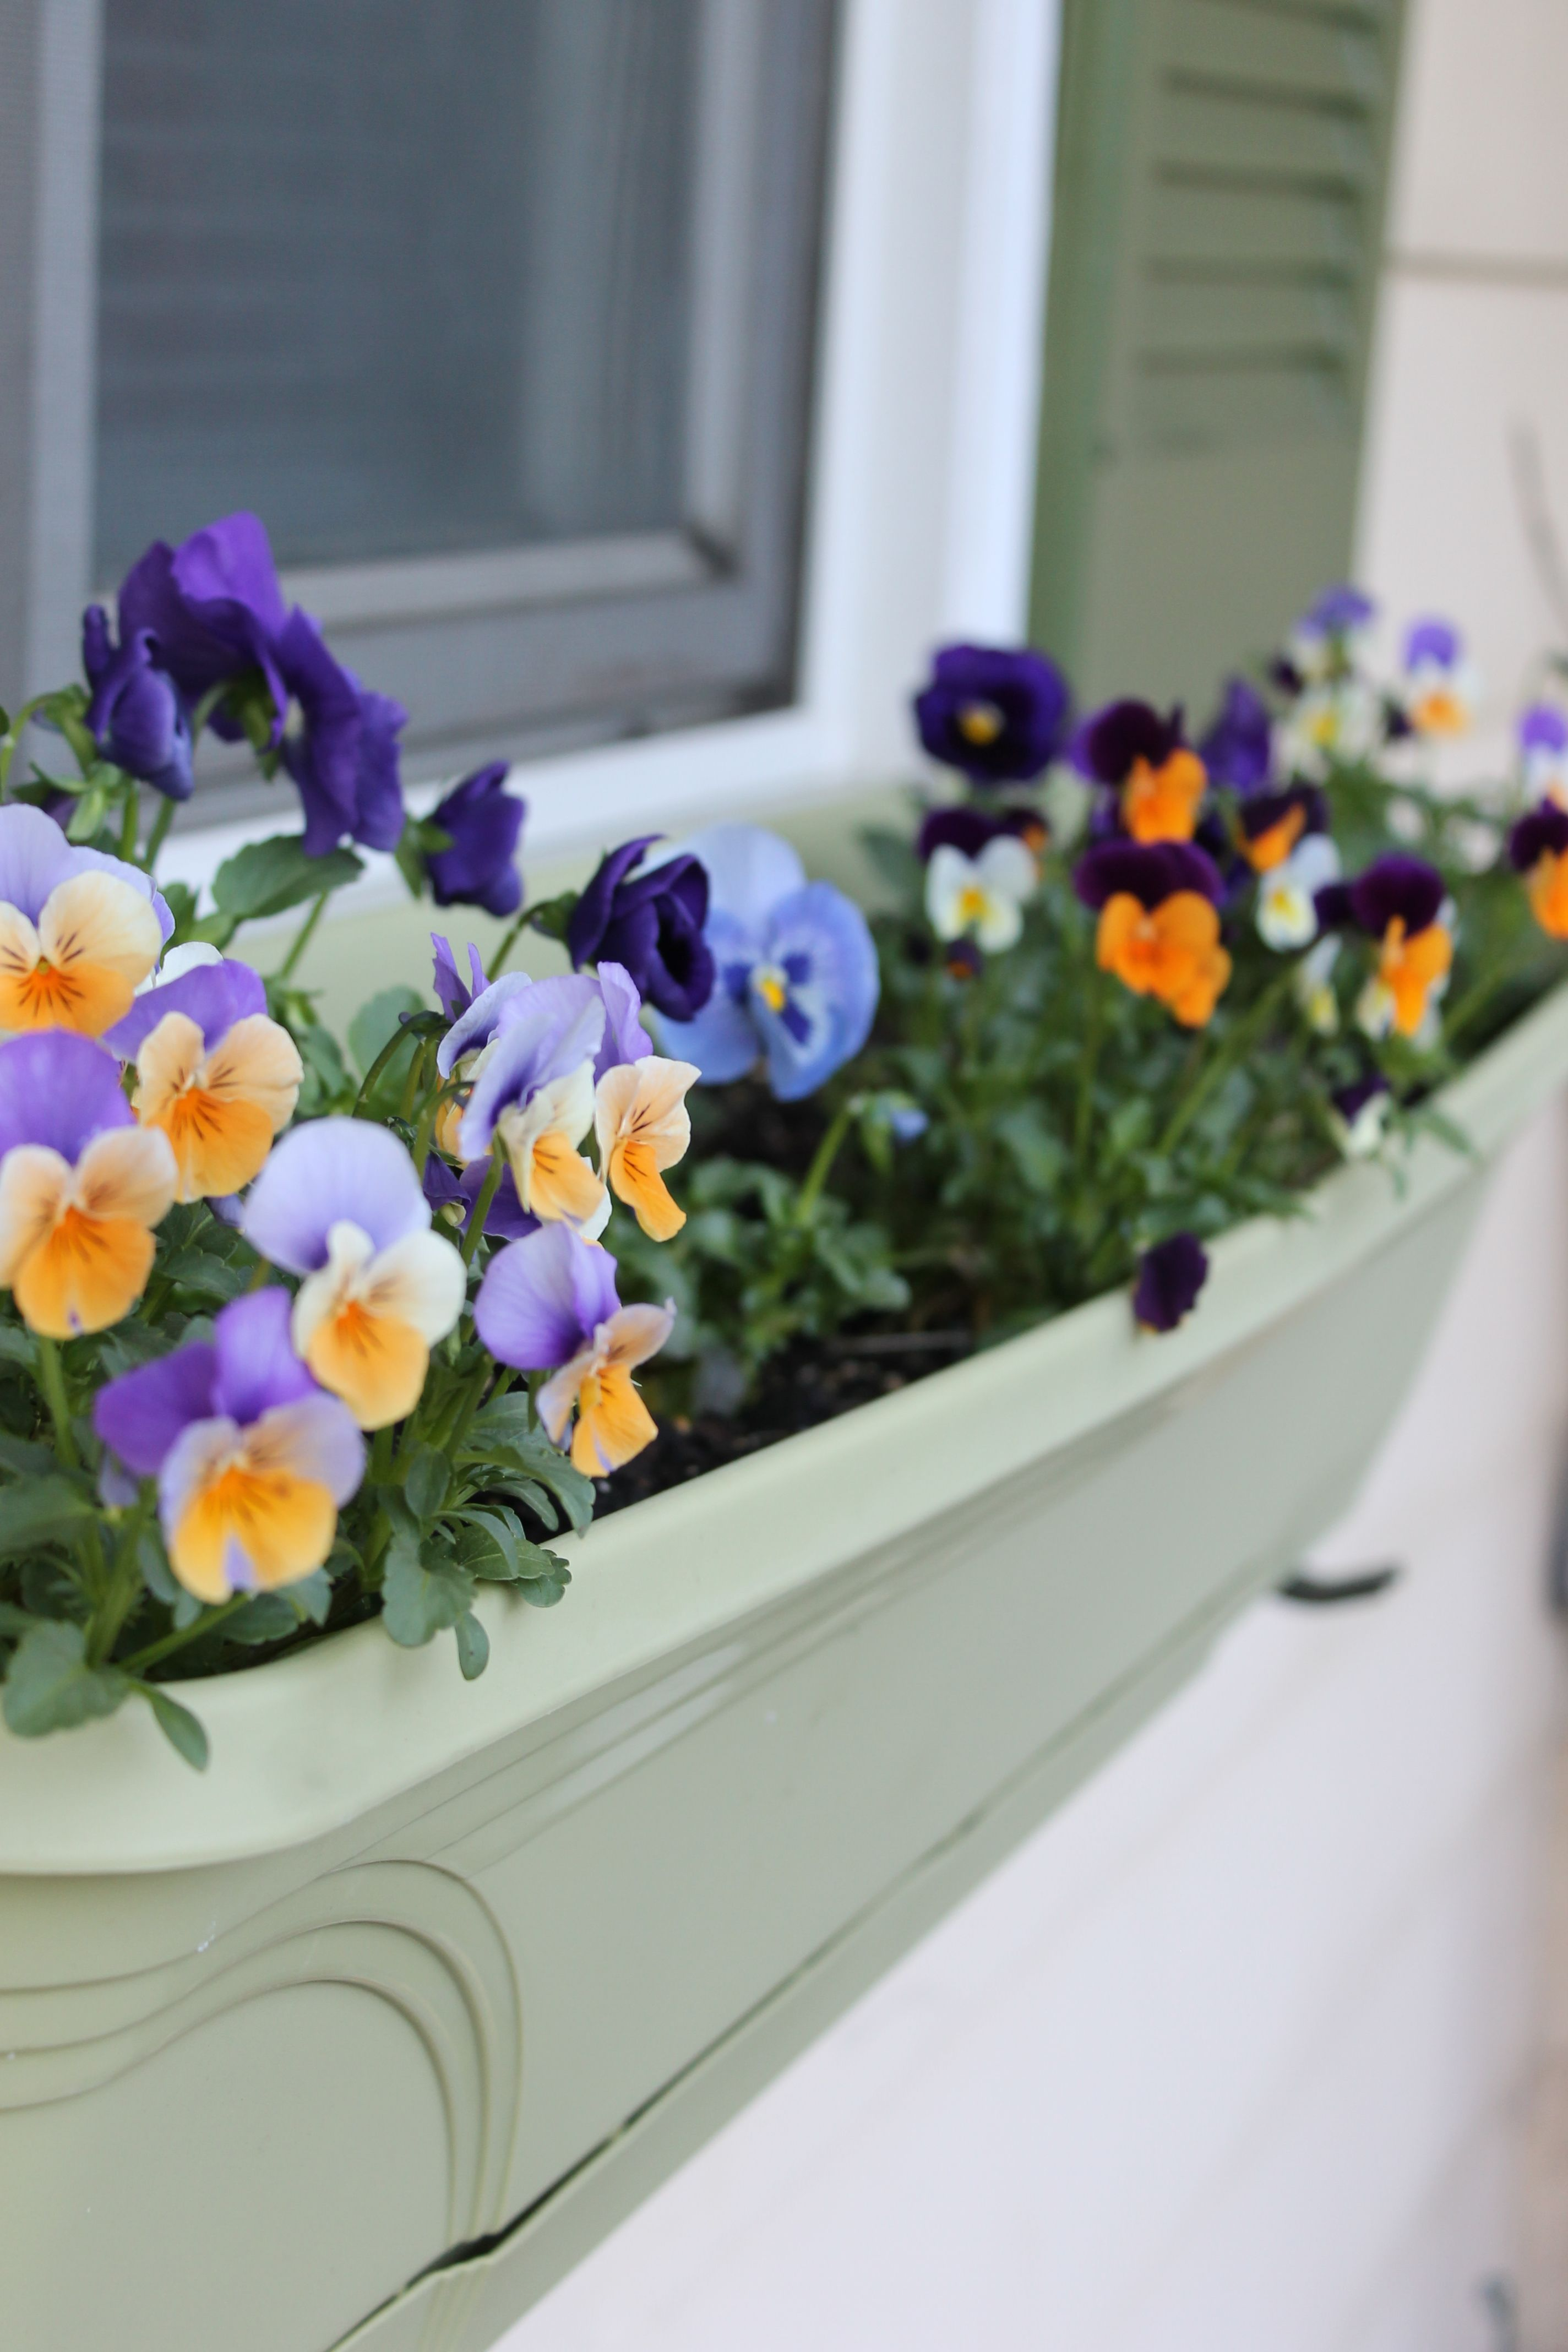 New flower box outside the kitchen window. Filled with pansies and ...